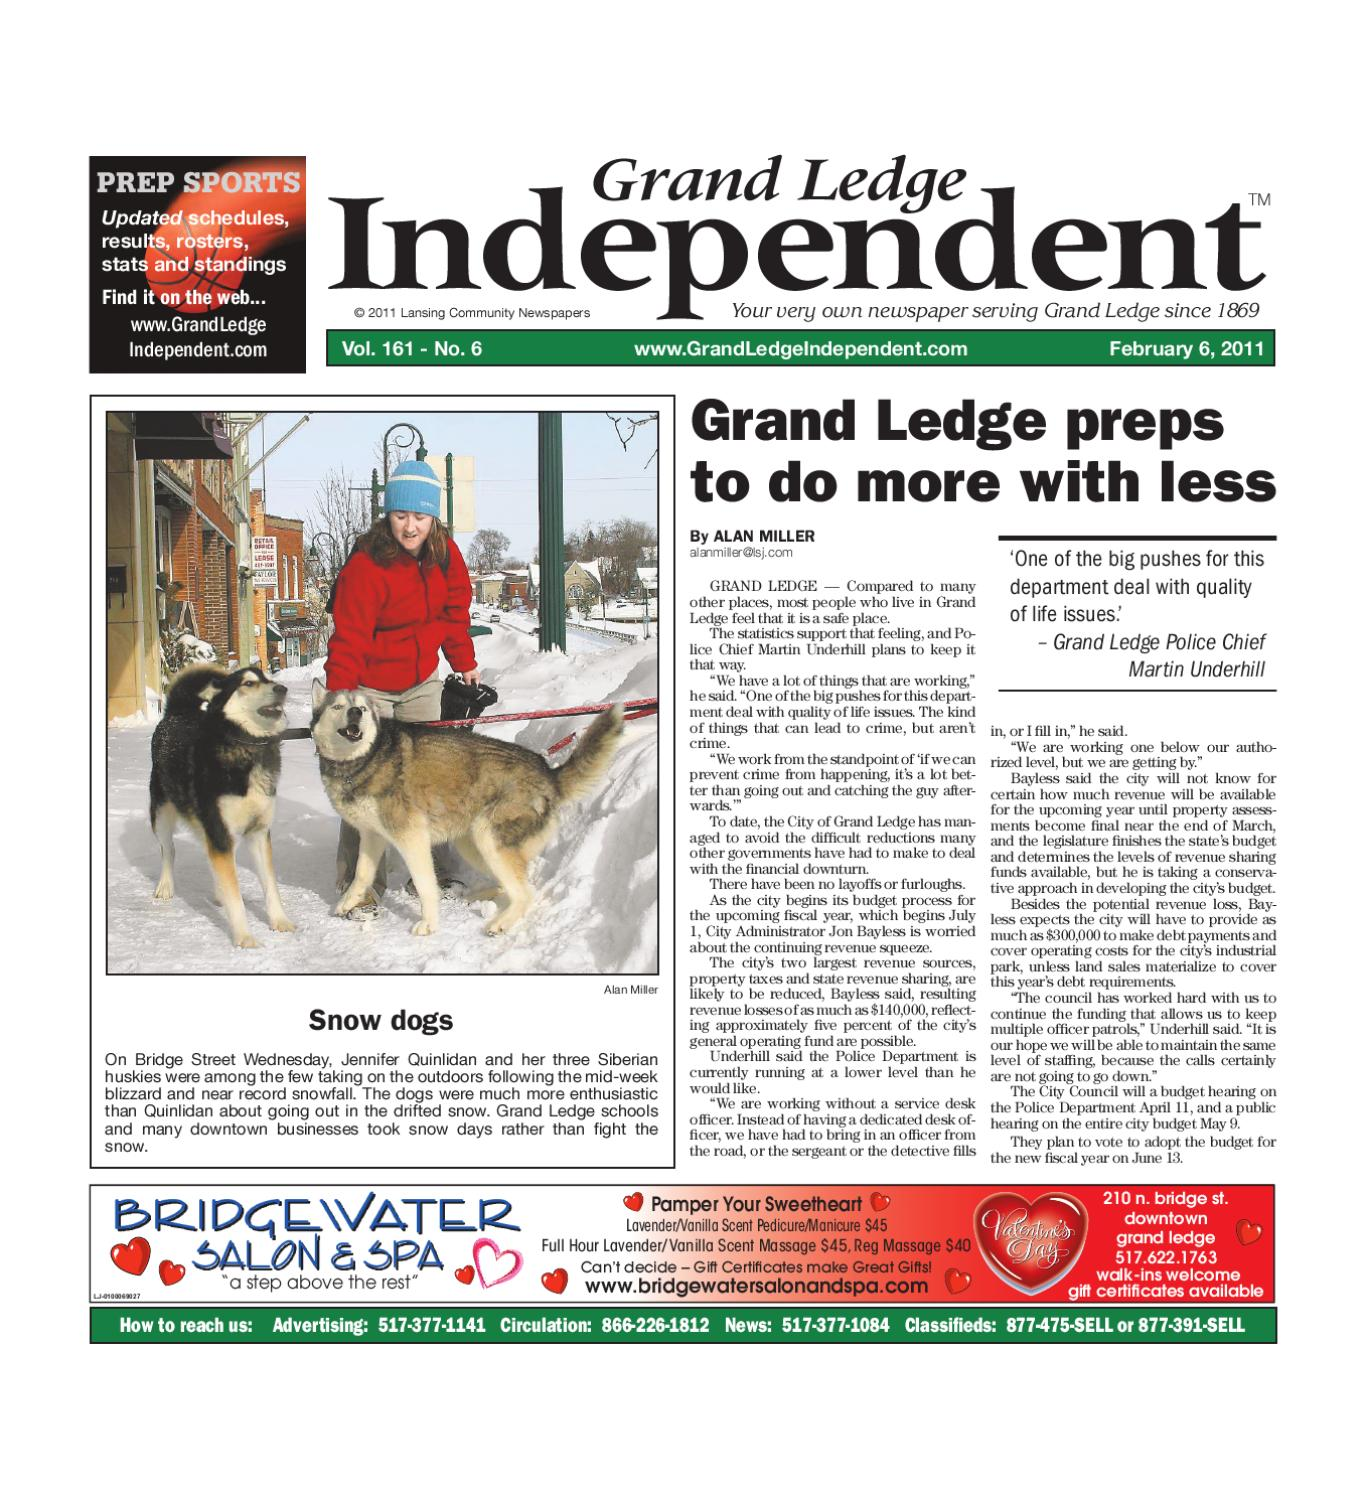 Grand Ledge Independent by Lansing State Journal issuu